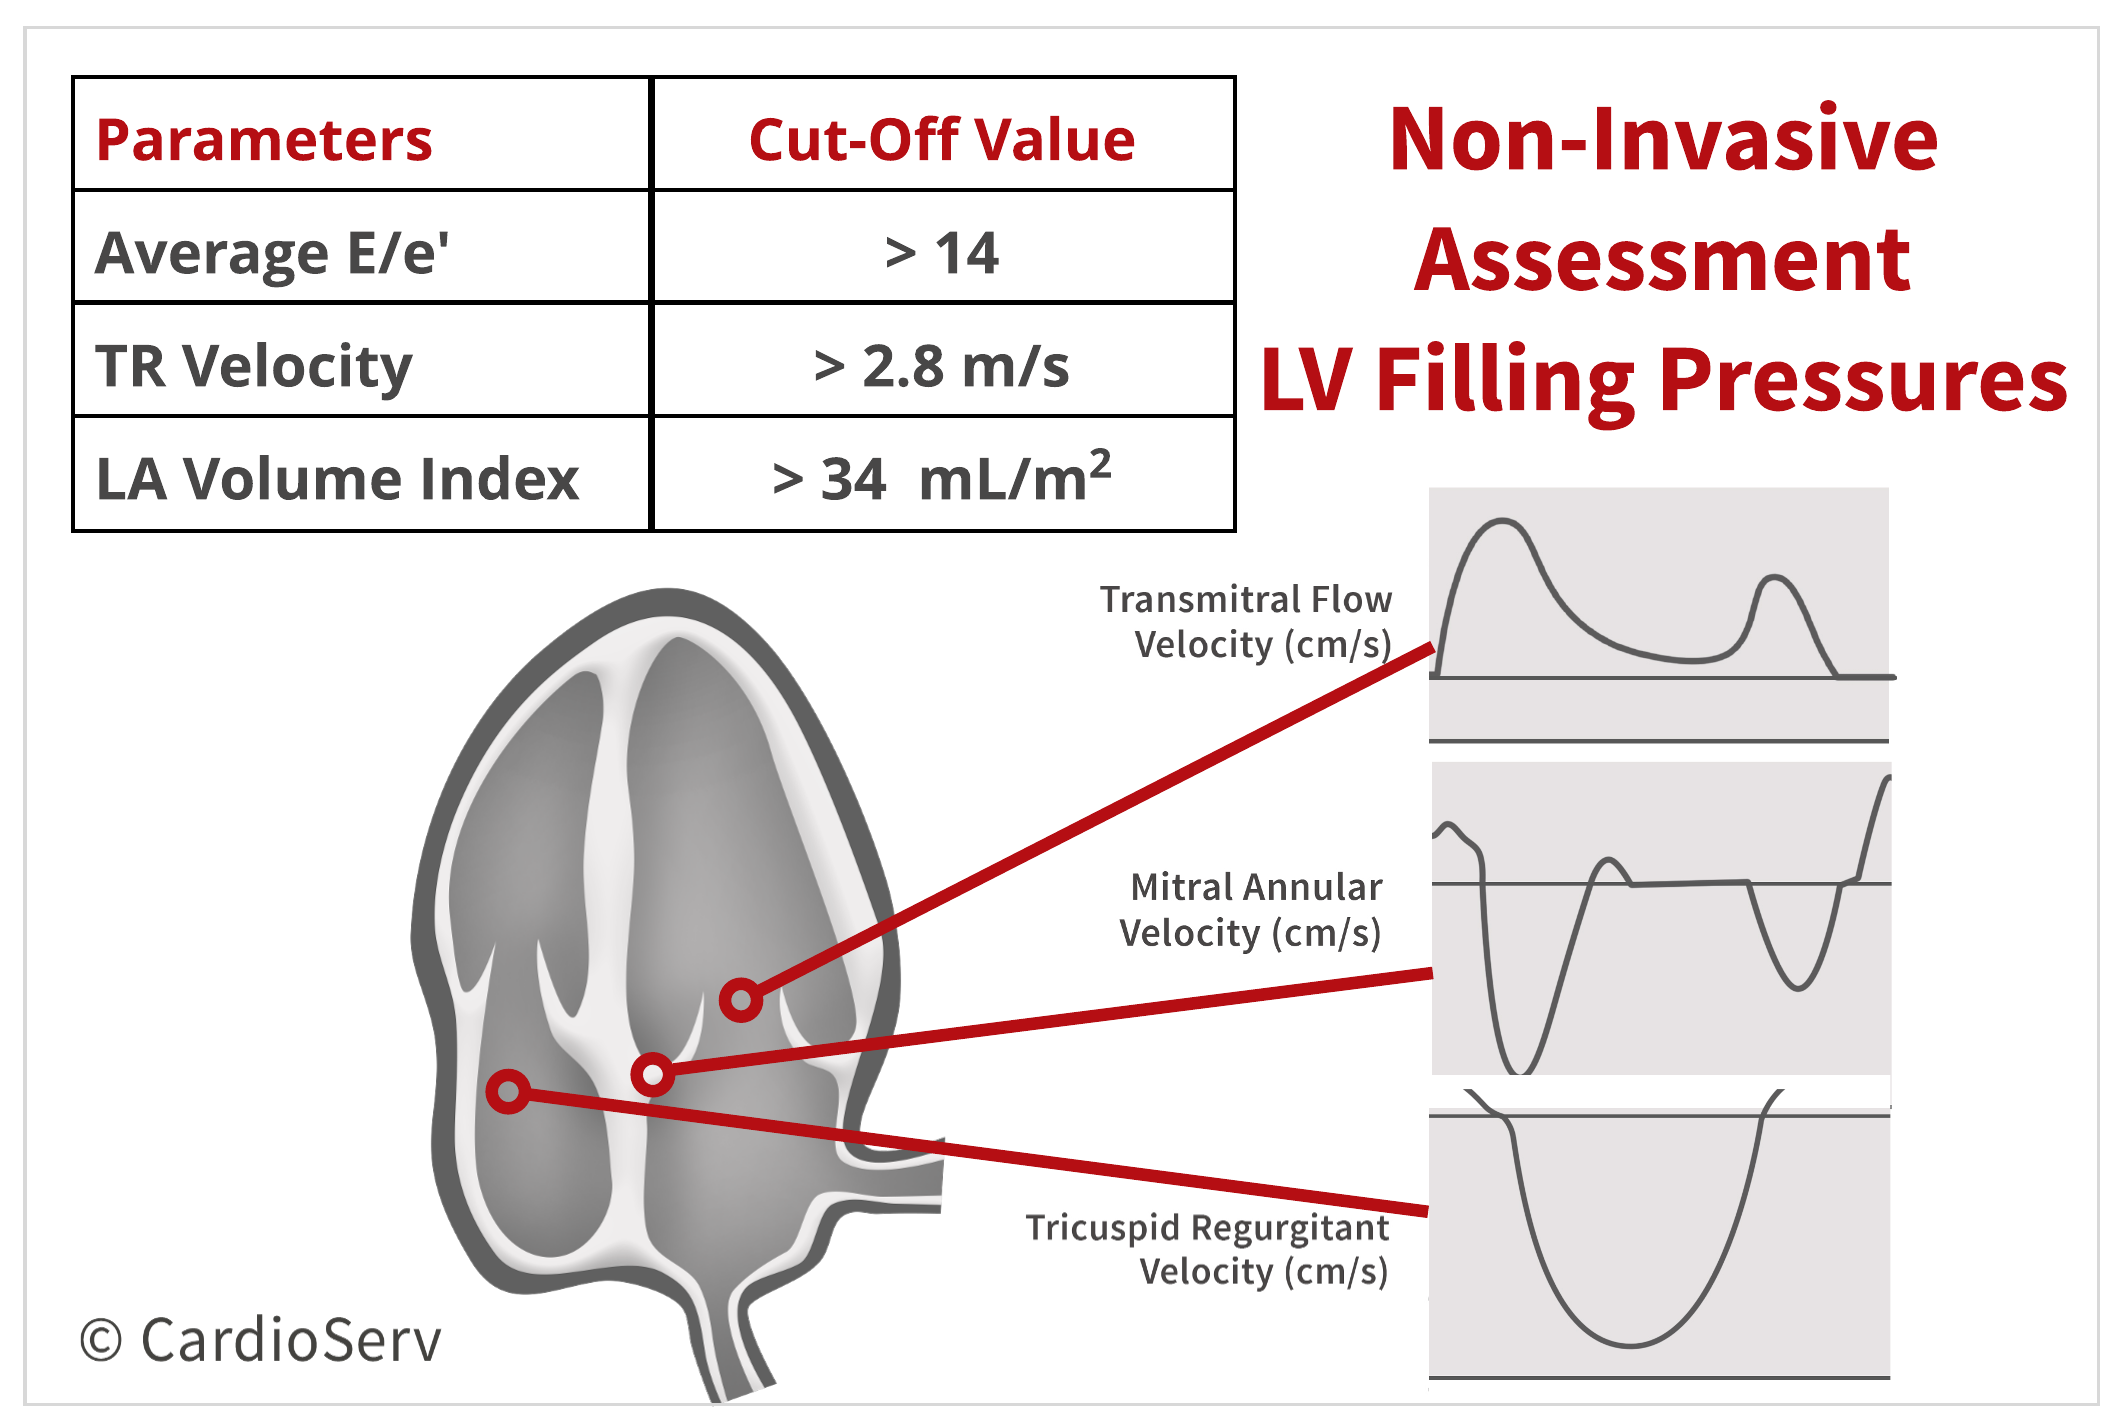 Non-Invasive LV Filling Pressures